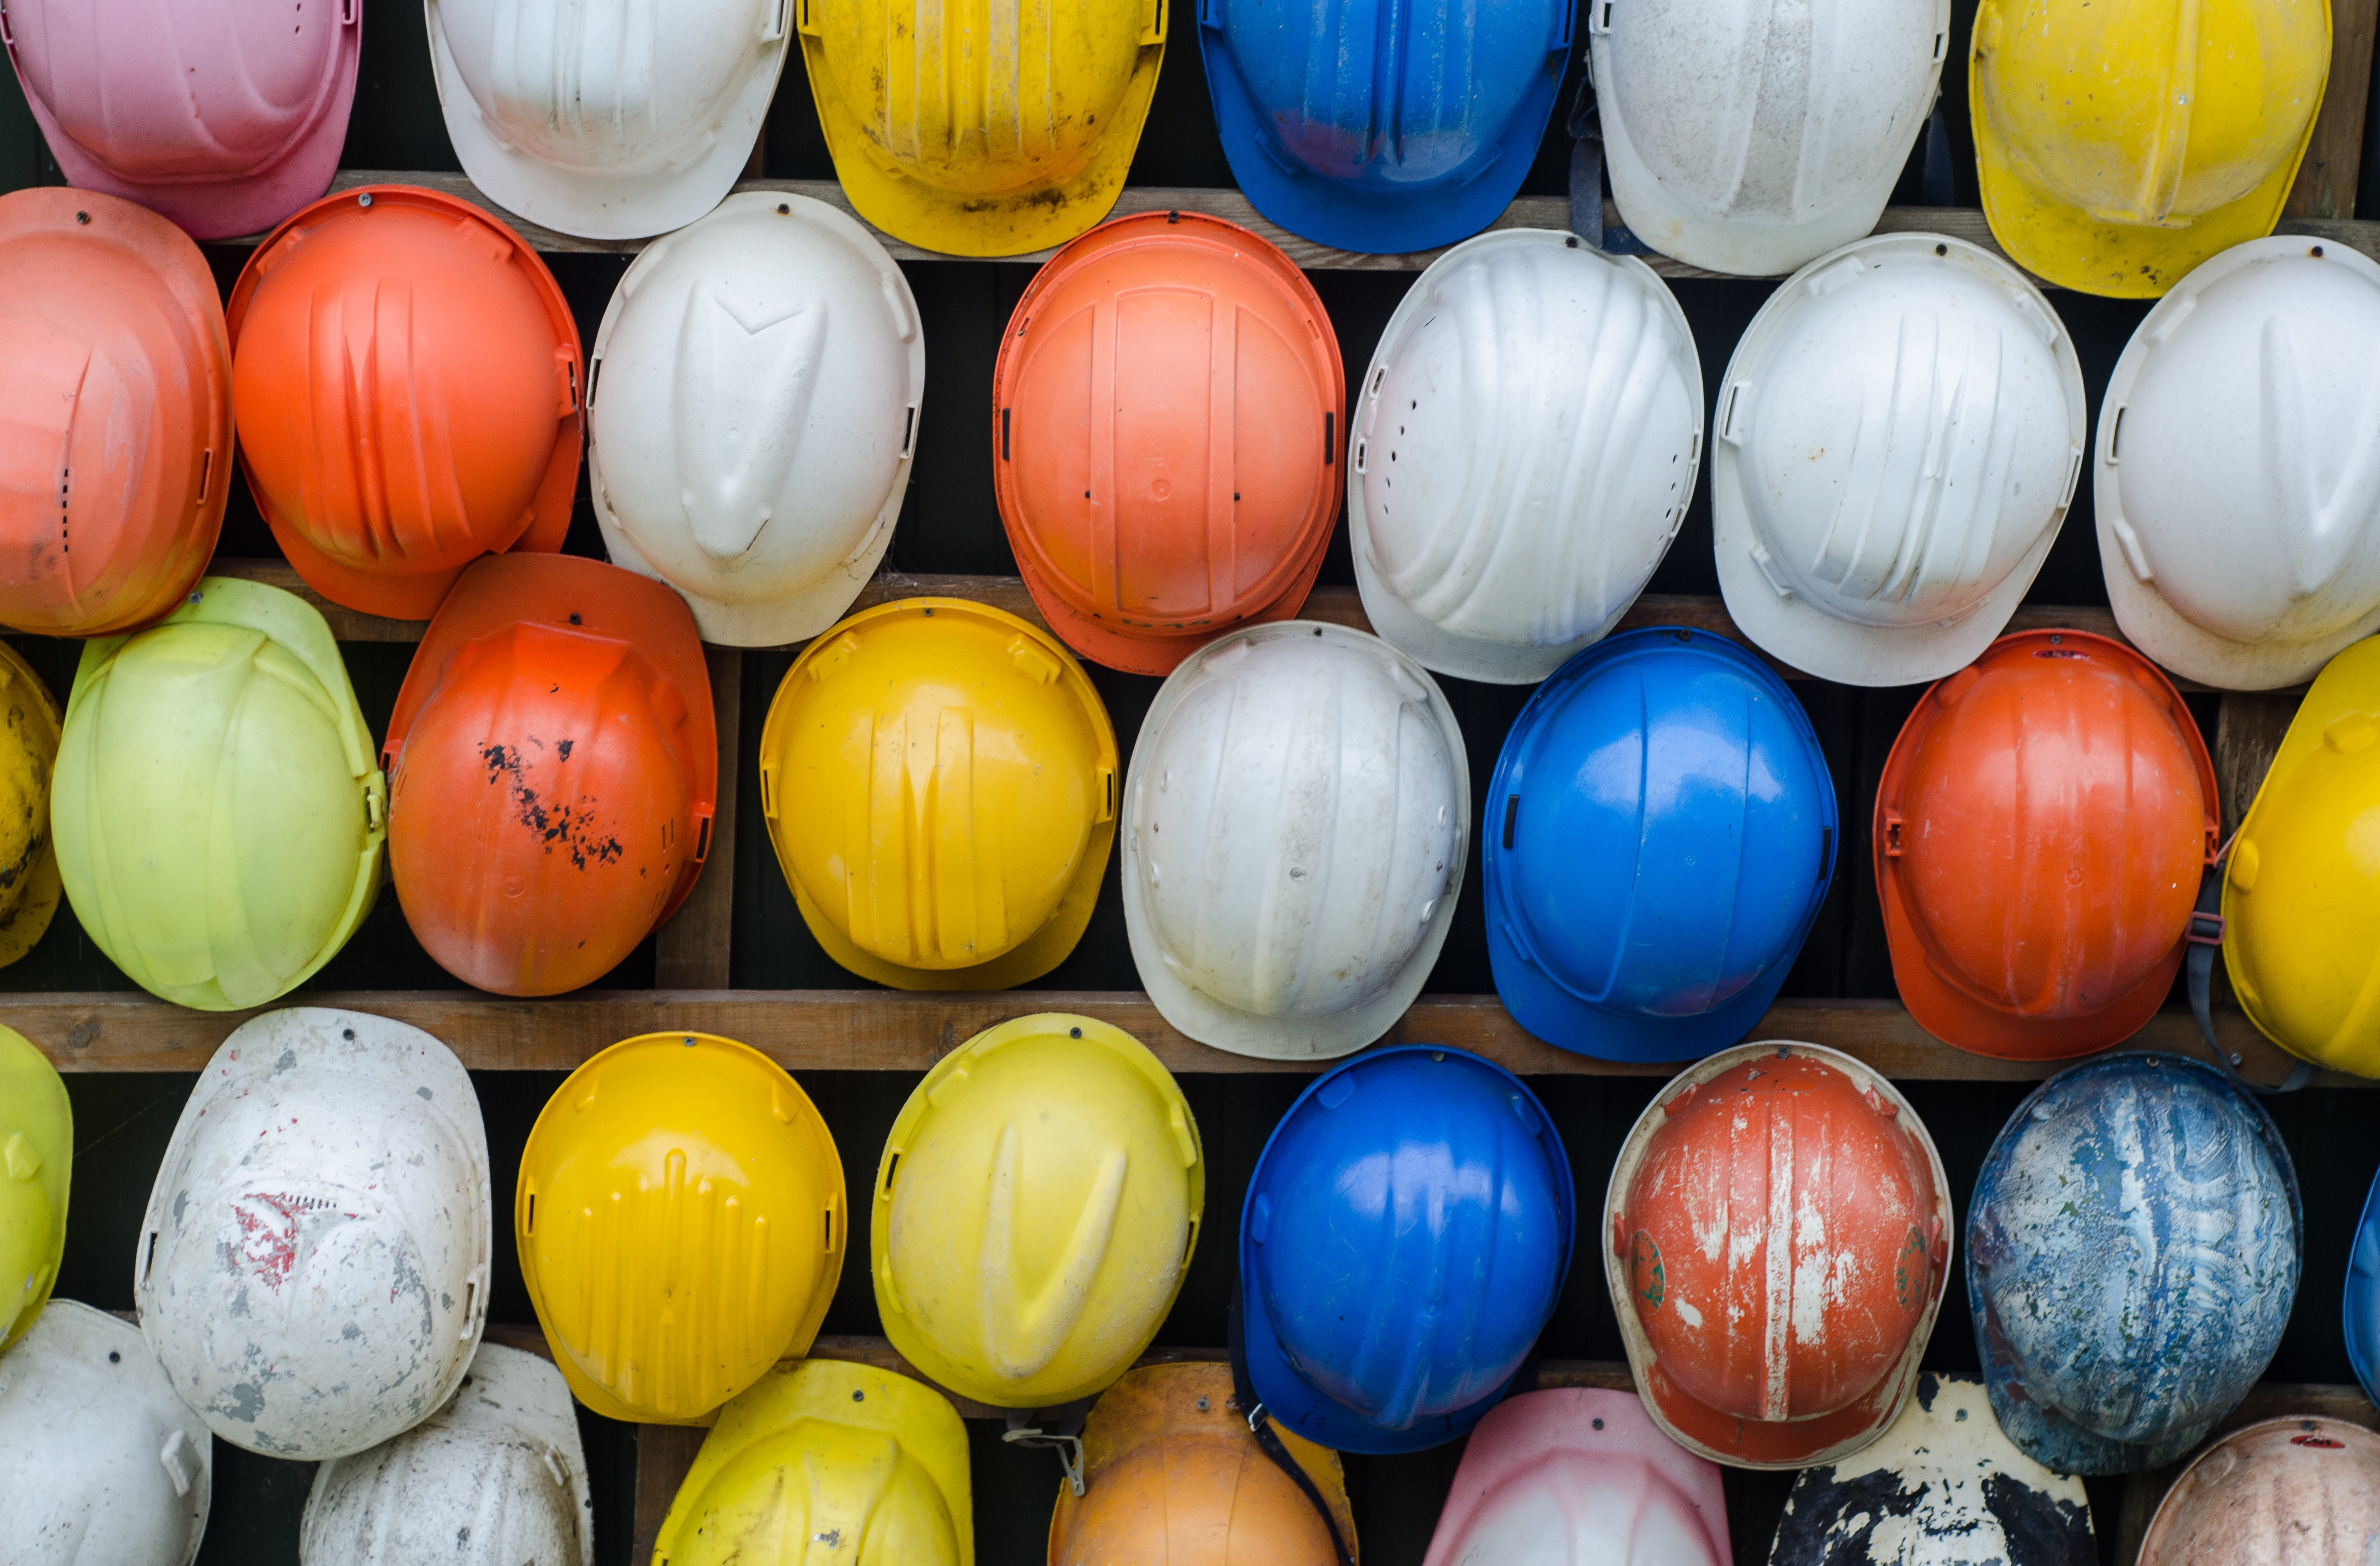 construction accident attorney queens nyc